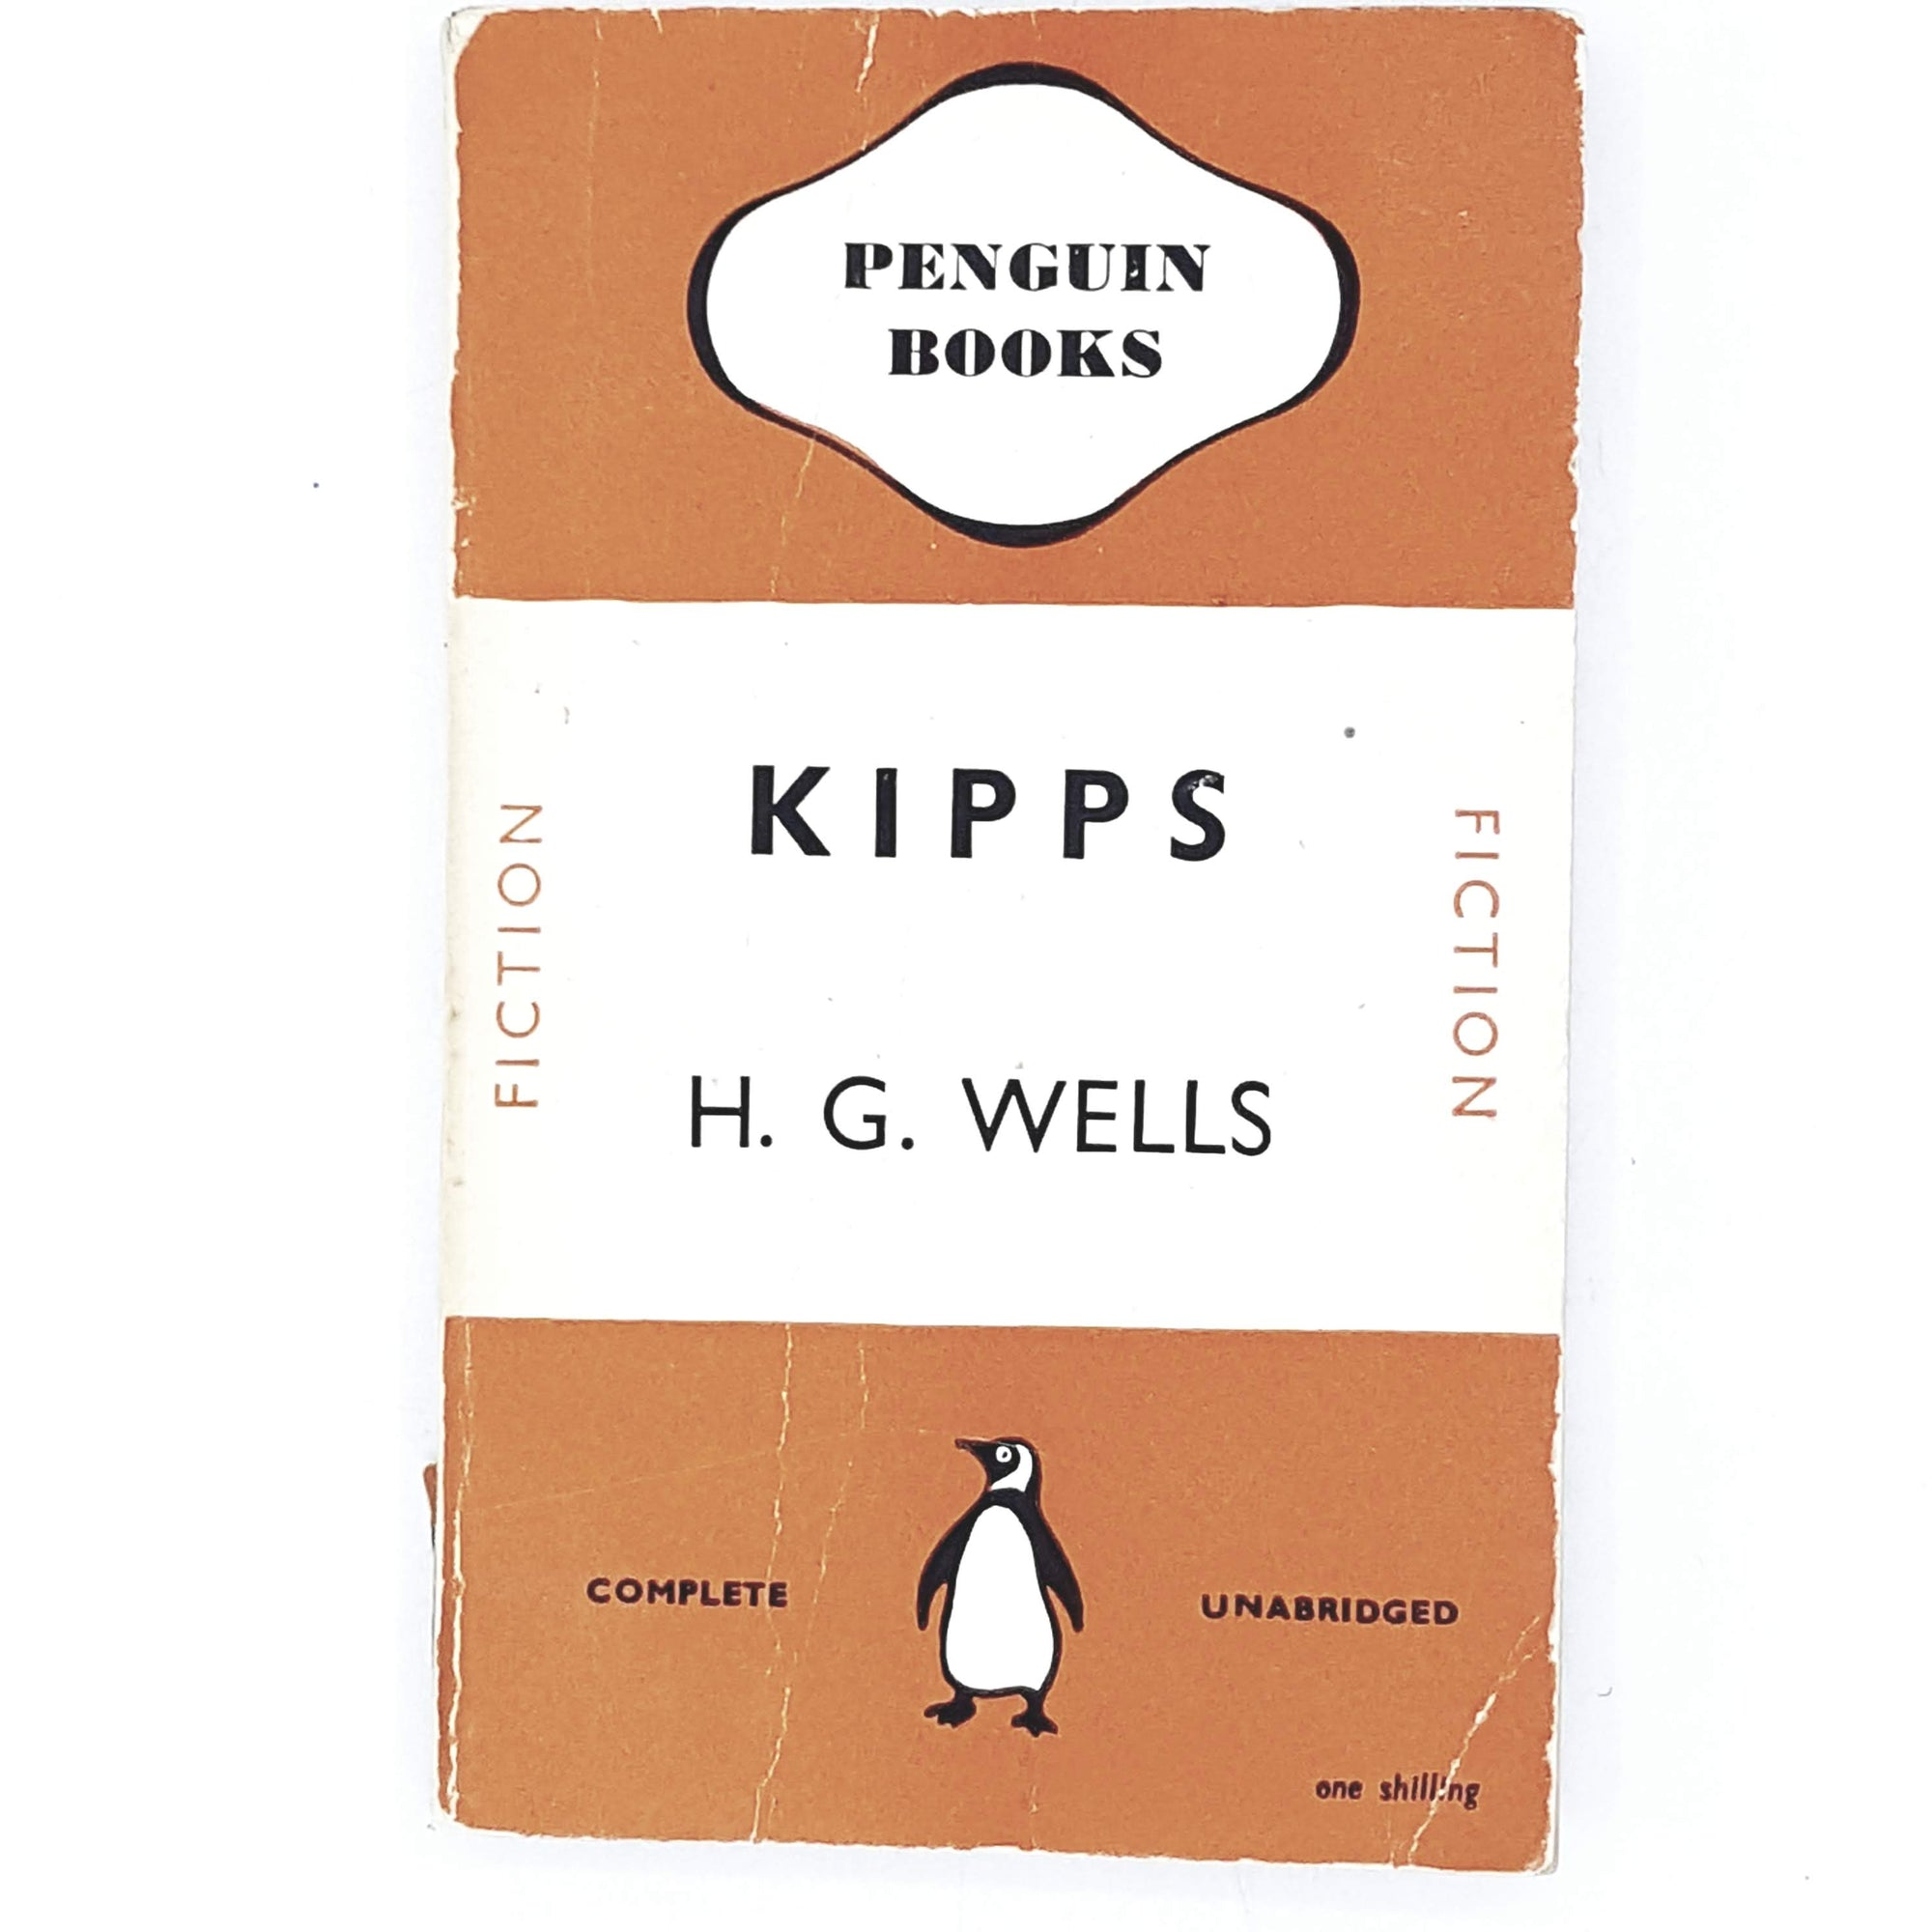 kipps-hg-wells-orange-penguin-vintage-book-country-house-library